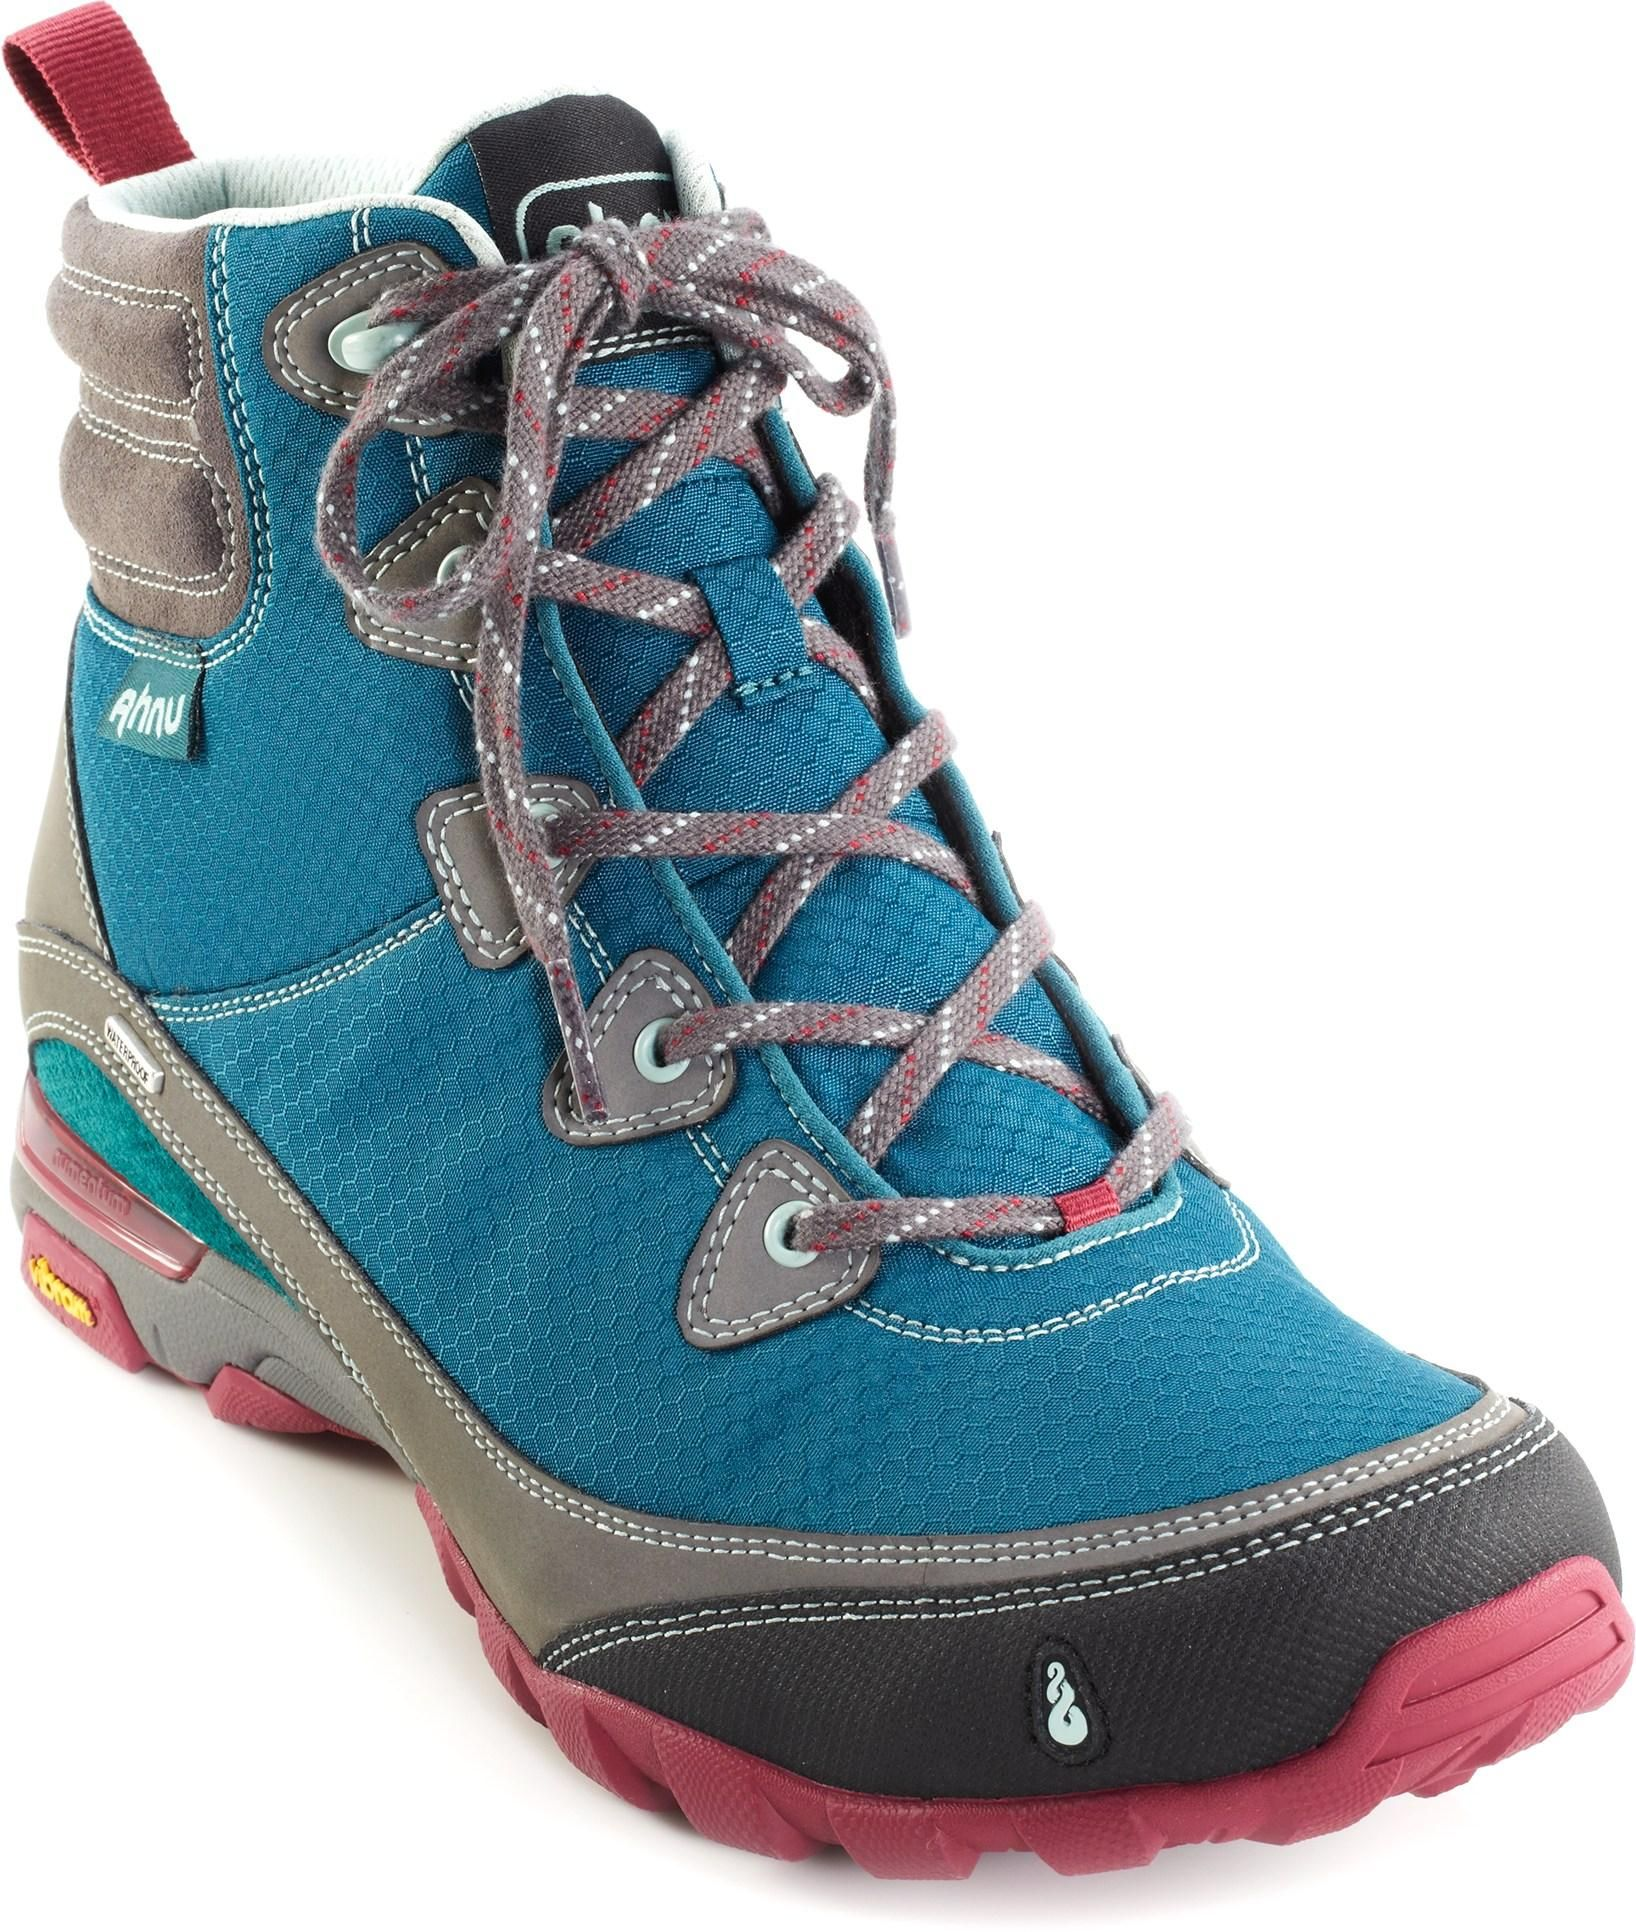 Women's Light Hiking Boot